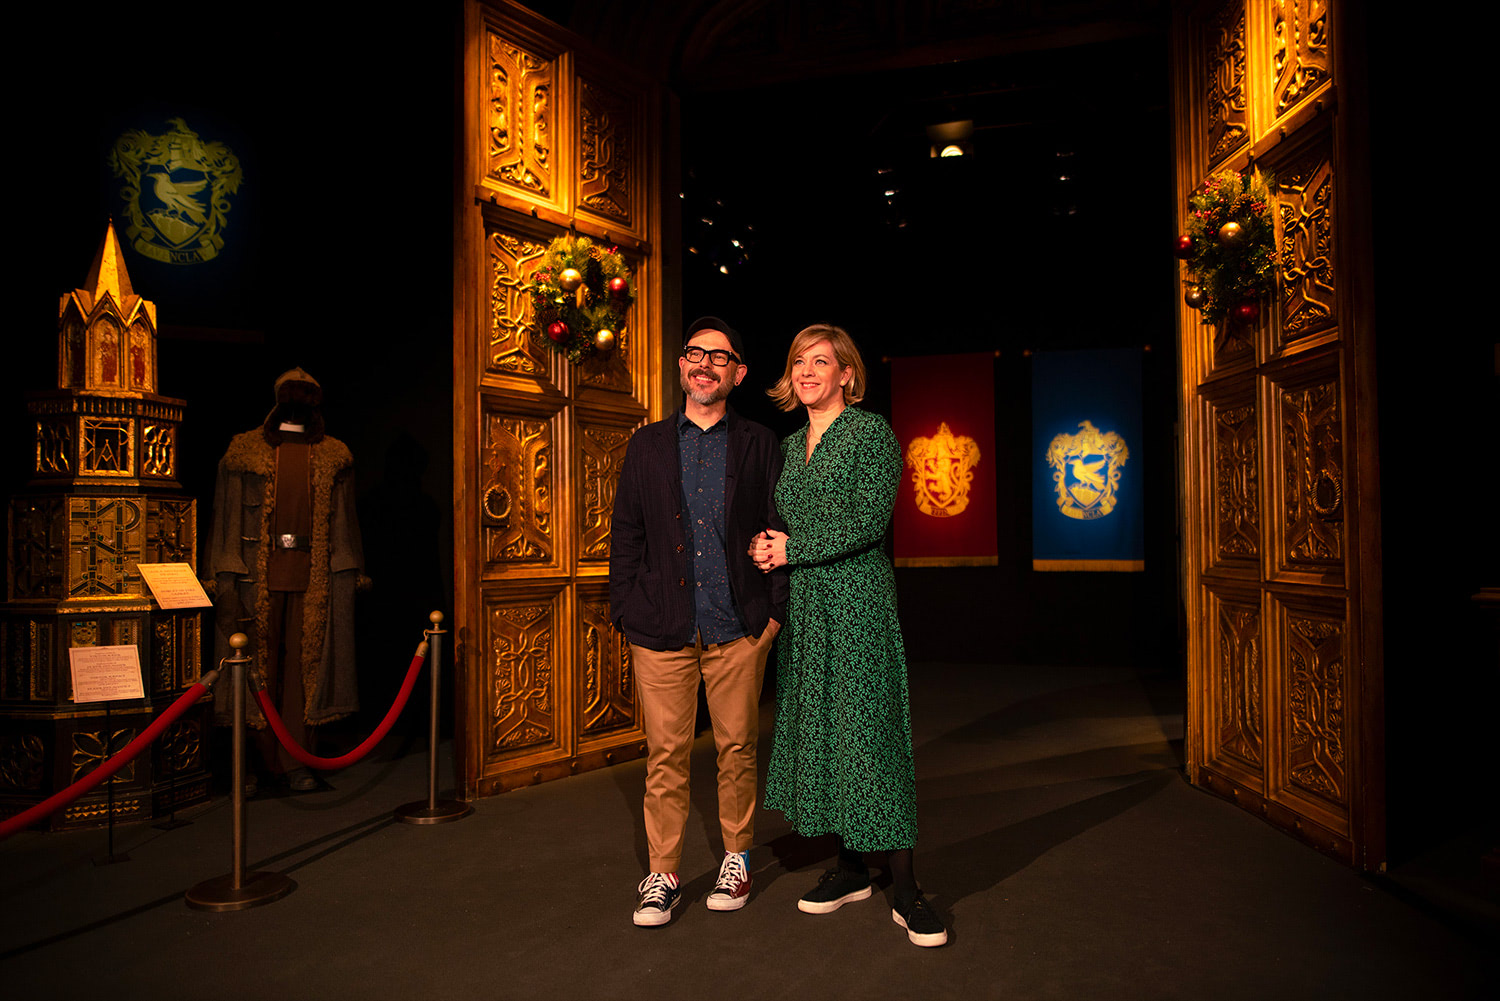 Eduardo Lima and Miraphora Mina launch 'Harry Potter: The Exhibition' in Lisbon